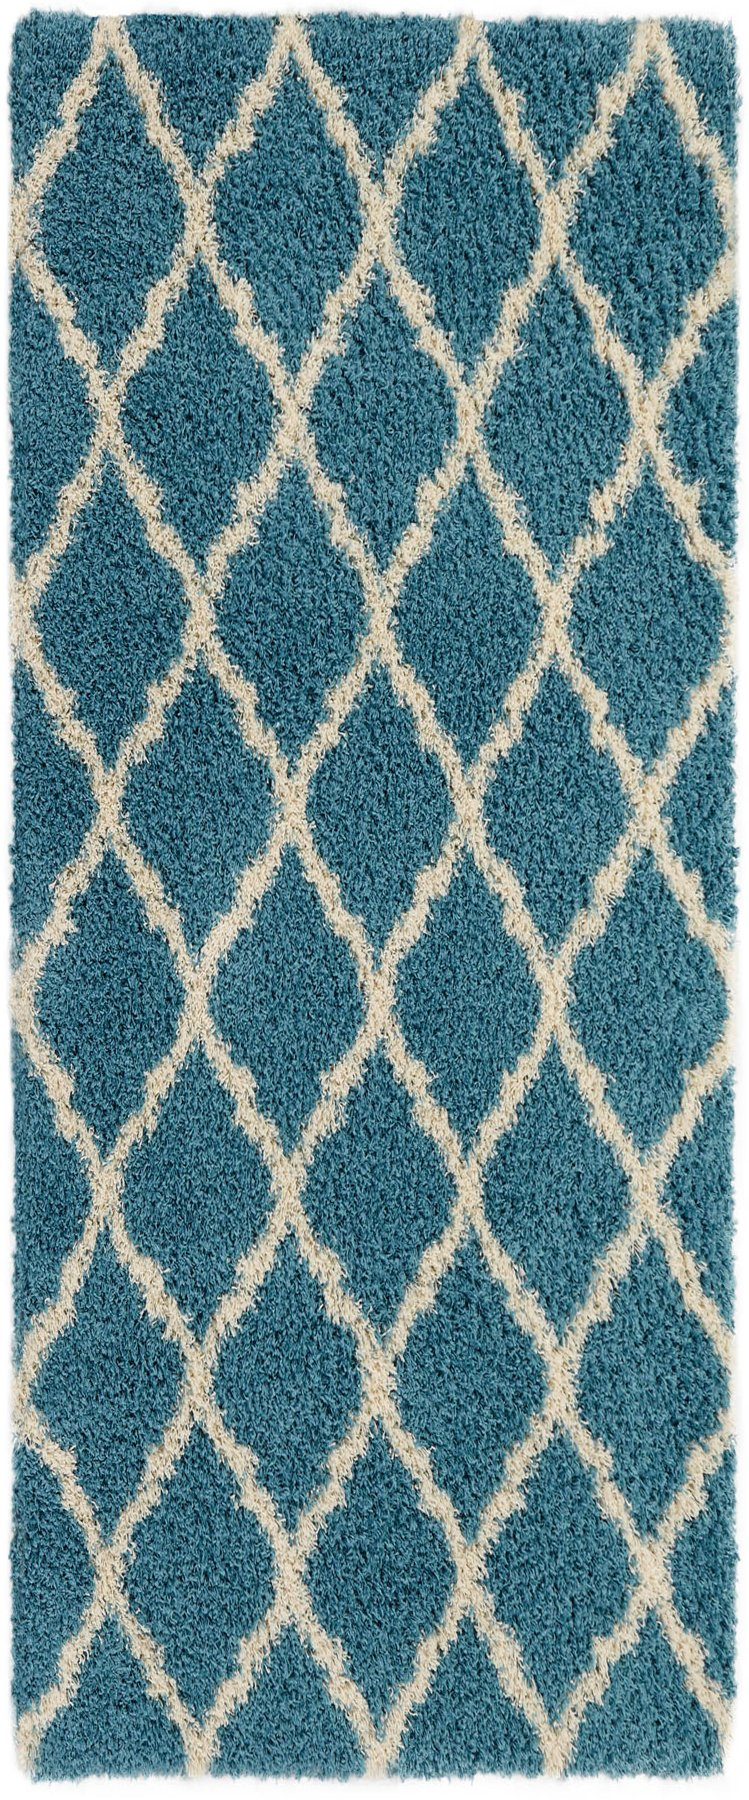 Ottomanson Ultimate Shaggy Collection Moroccan Trellis Design Contemporary Hallway & Kitchen Shag Runner Rugs, Turquiose Blue, 2'7''L X 8'0''W by Ottomanson